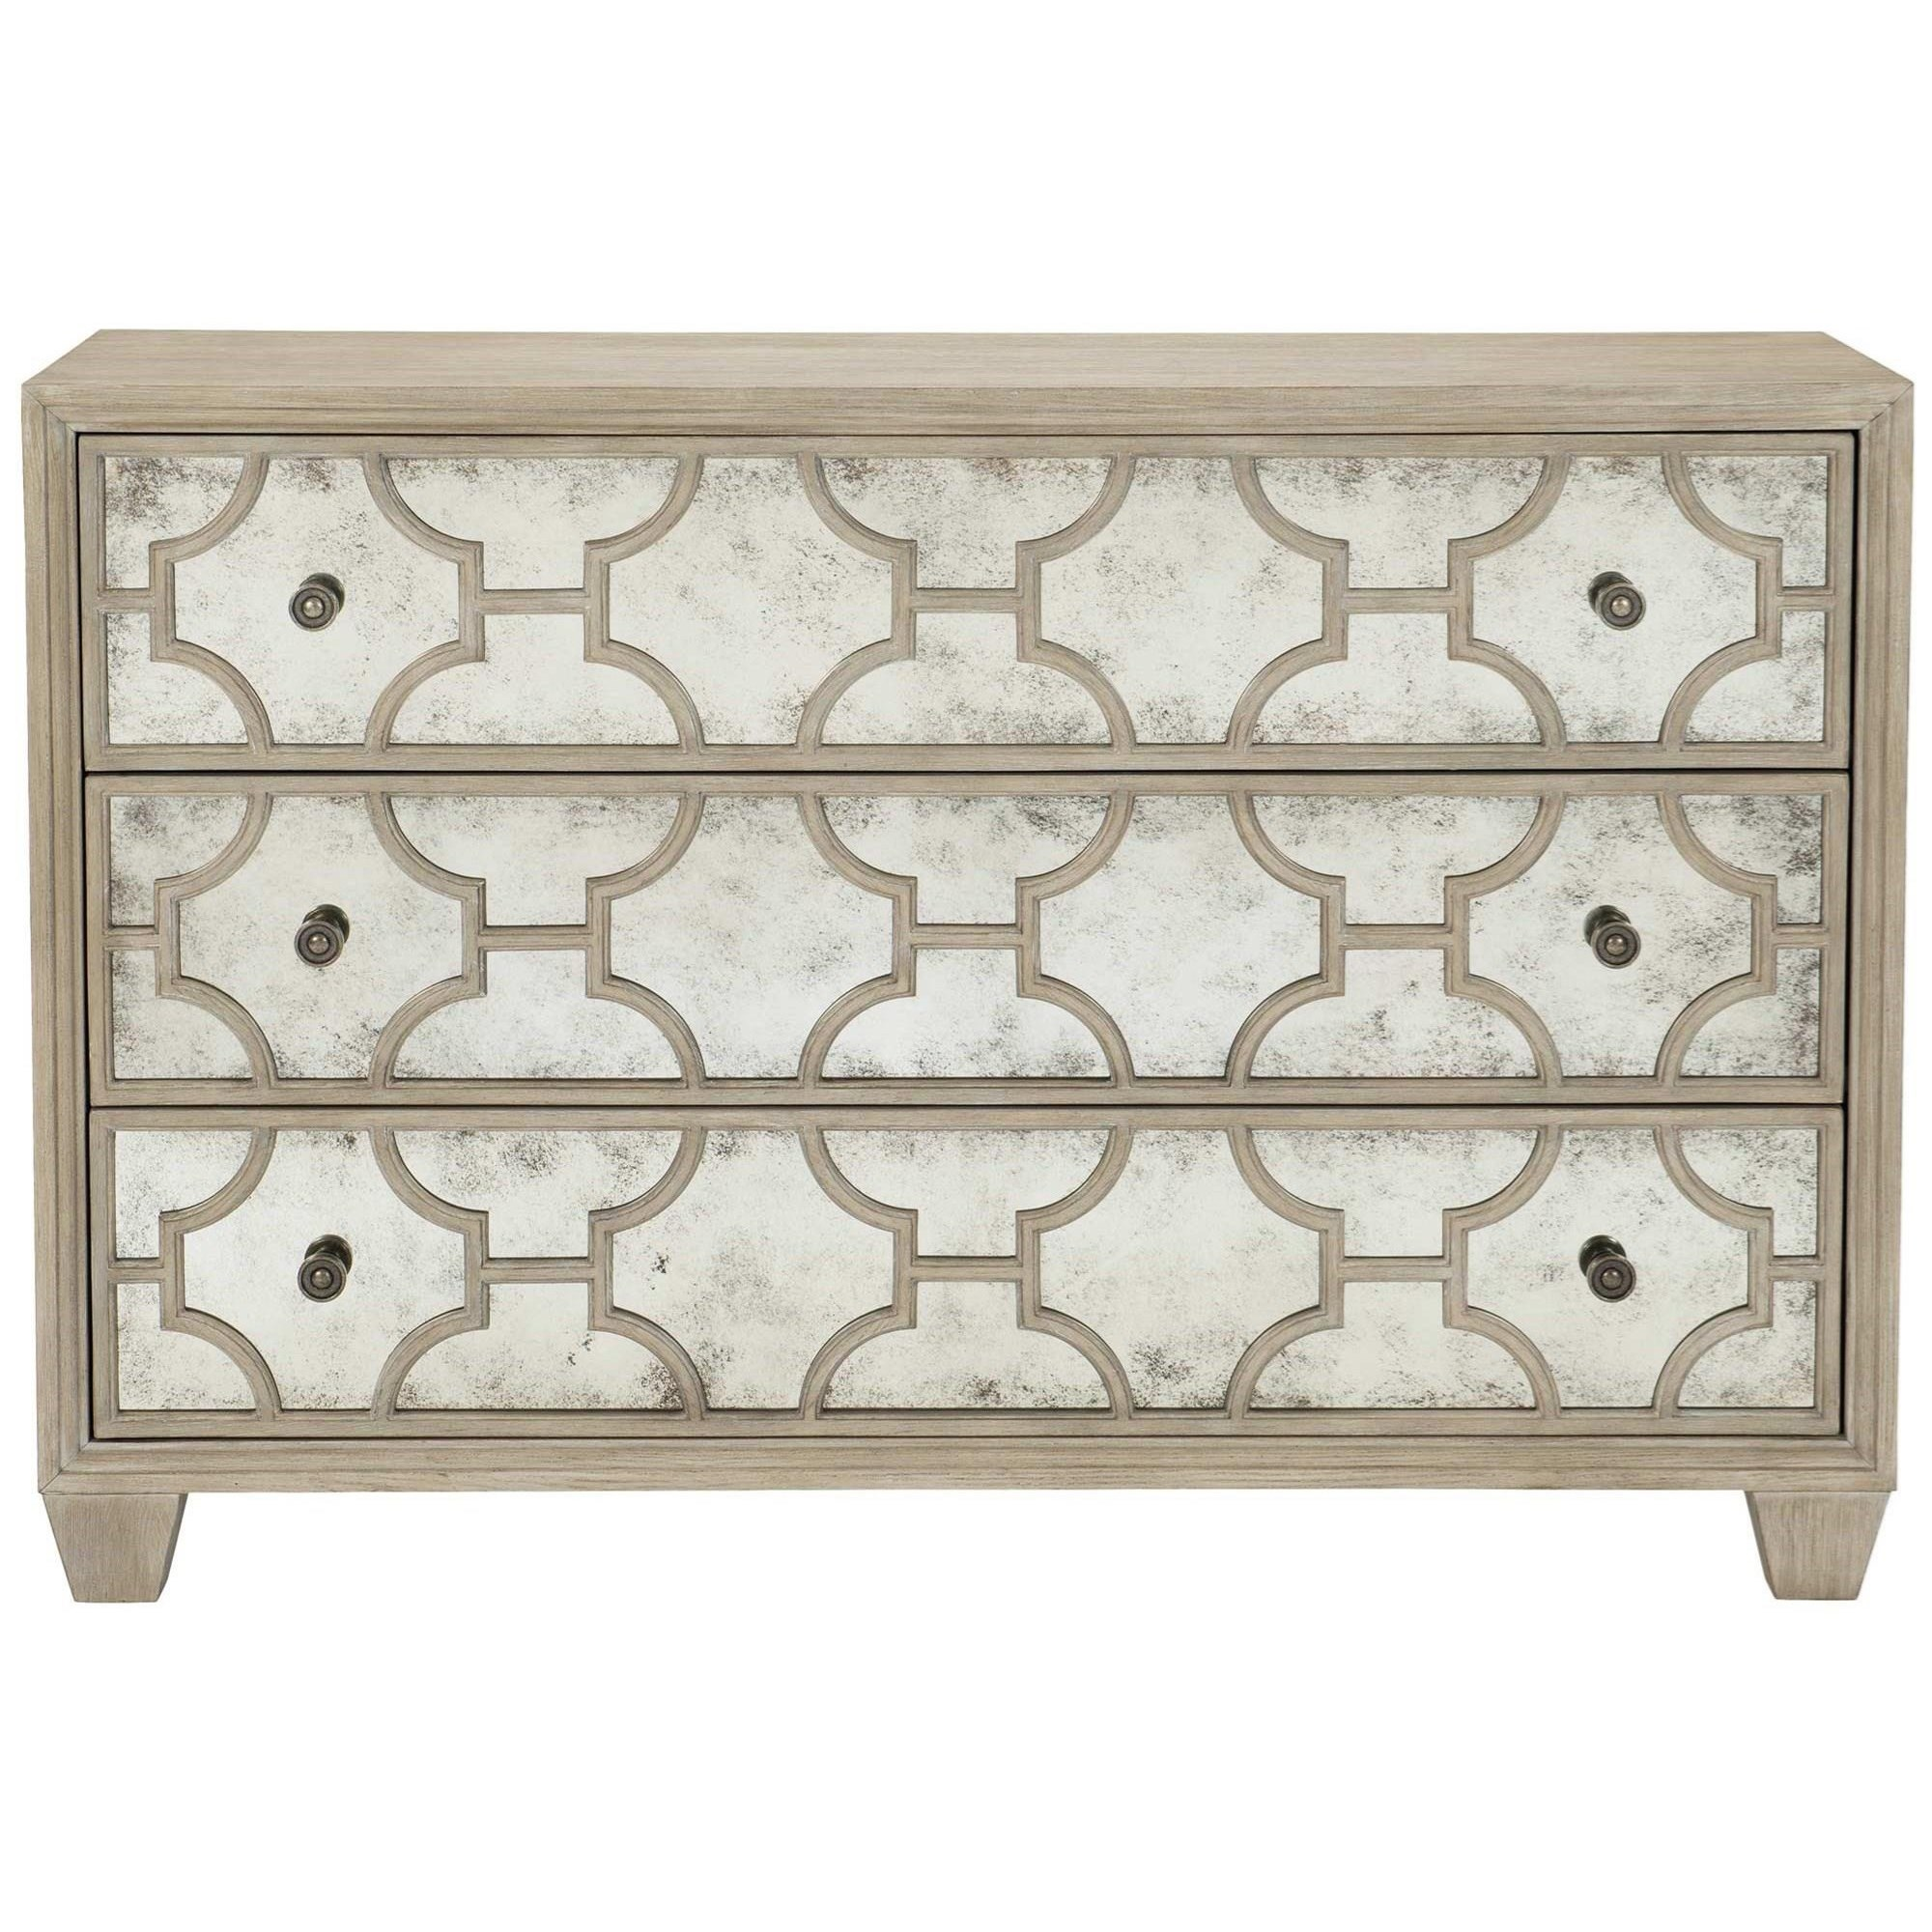 Santa Barbara 3-Drawer Chest by Bernhardt at Fisher Home Furnishings